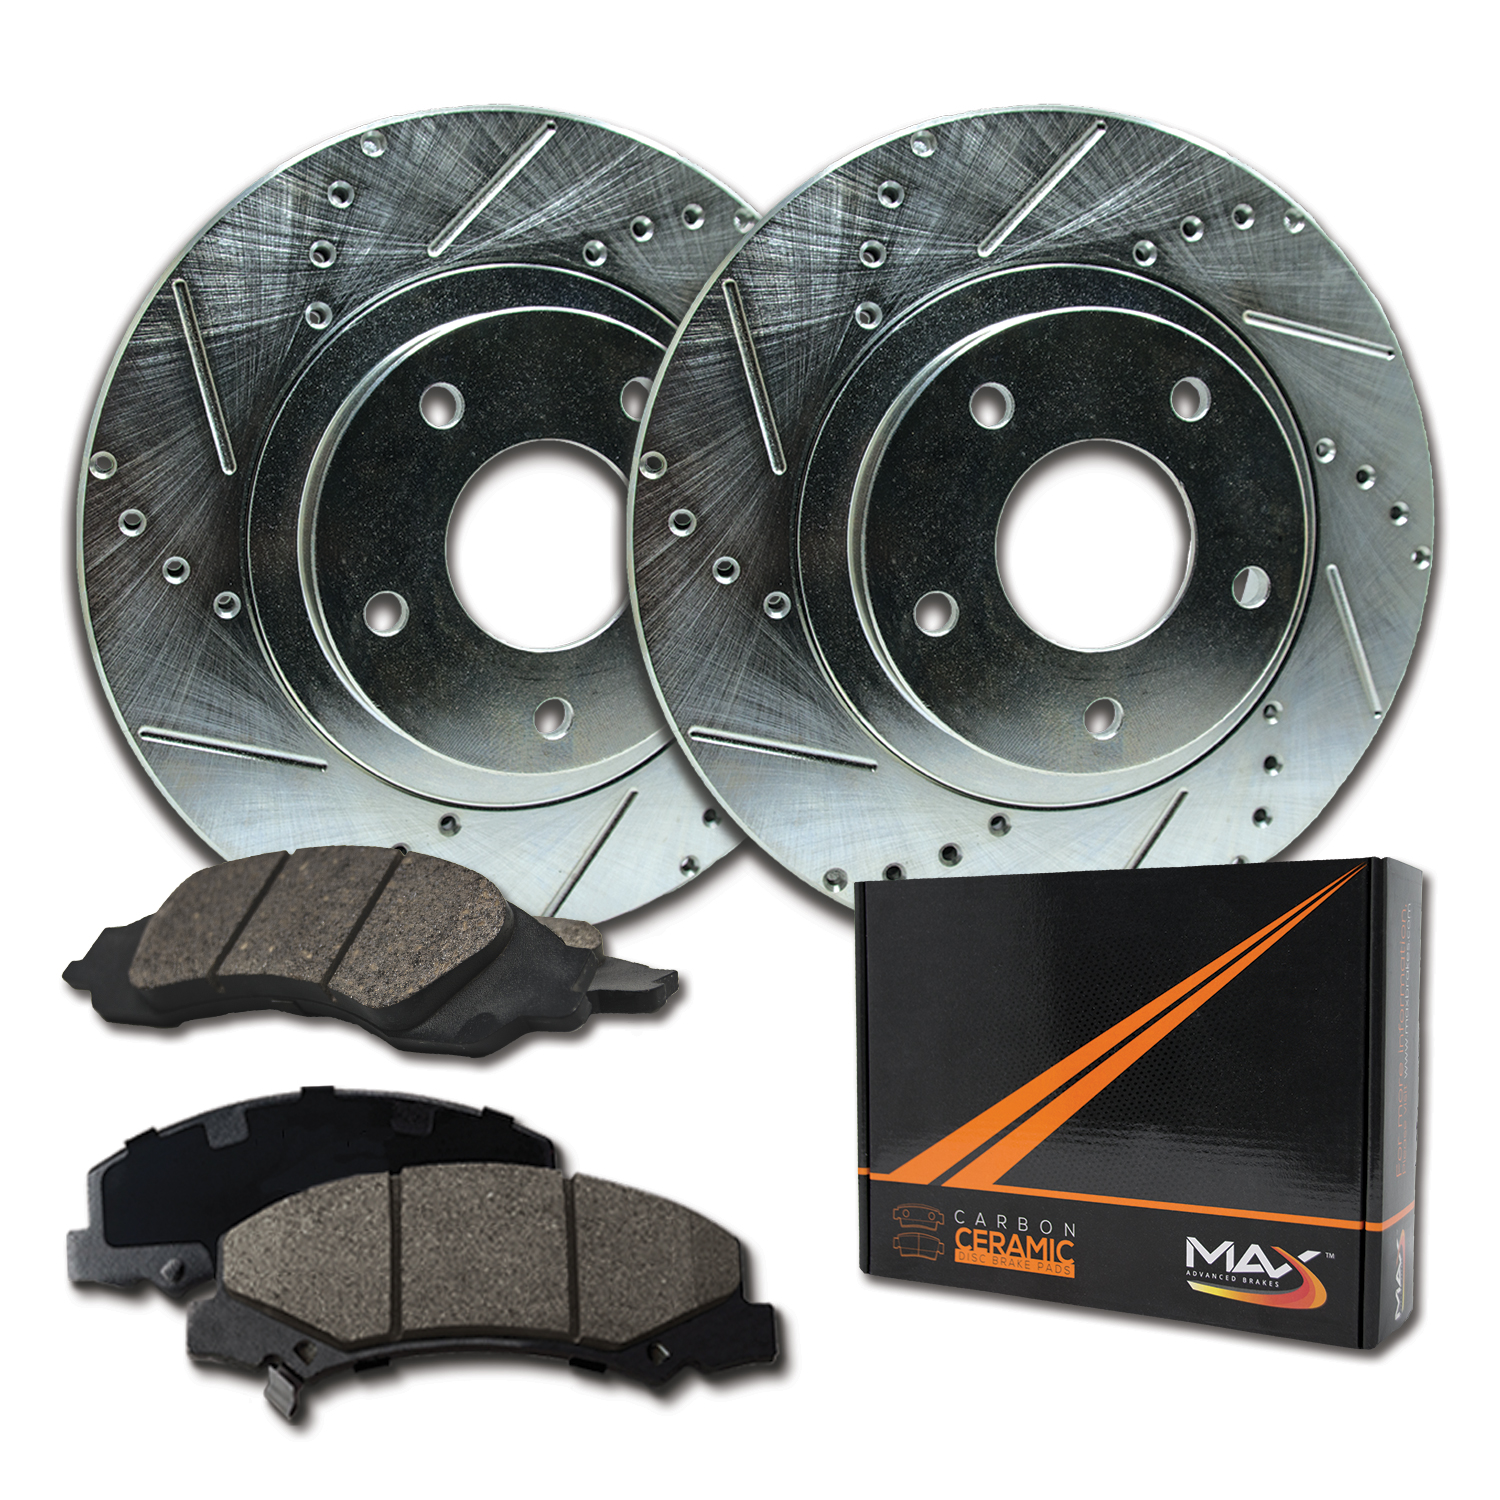 Fits: 2000 00 2001 01 2002 02 Dodge Durango 2WD//4WD Models Max Brakes Front Performance Brake Kit TA026031 Premium Slotted Drilled Rotors + Metallic Pads